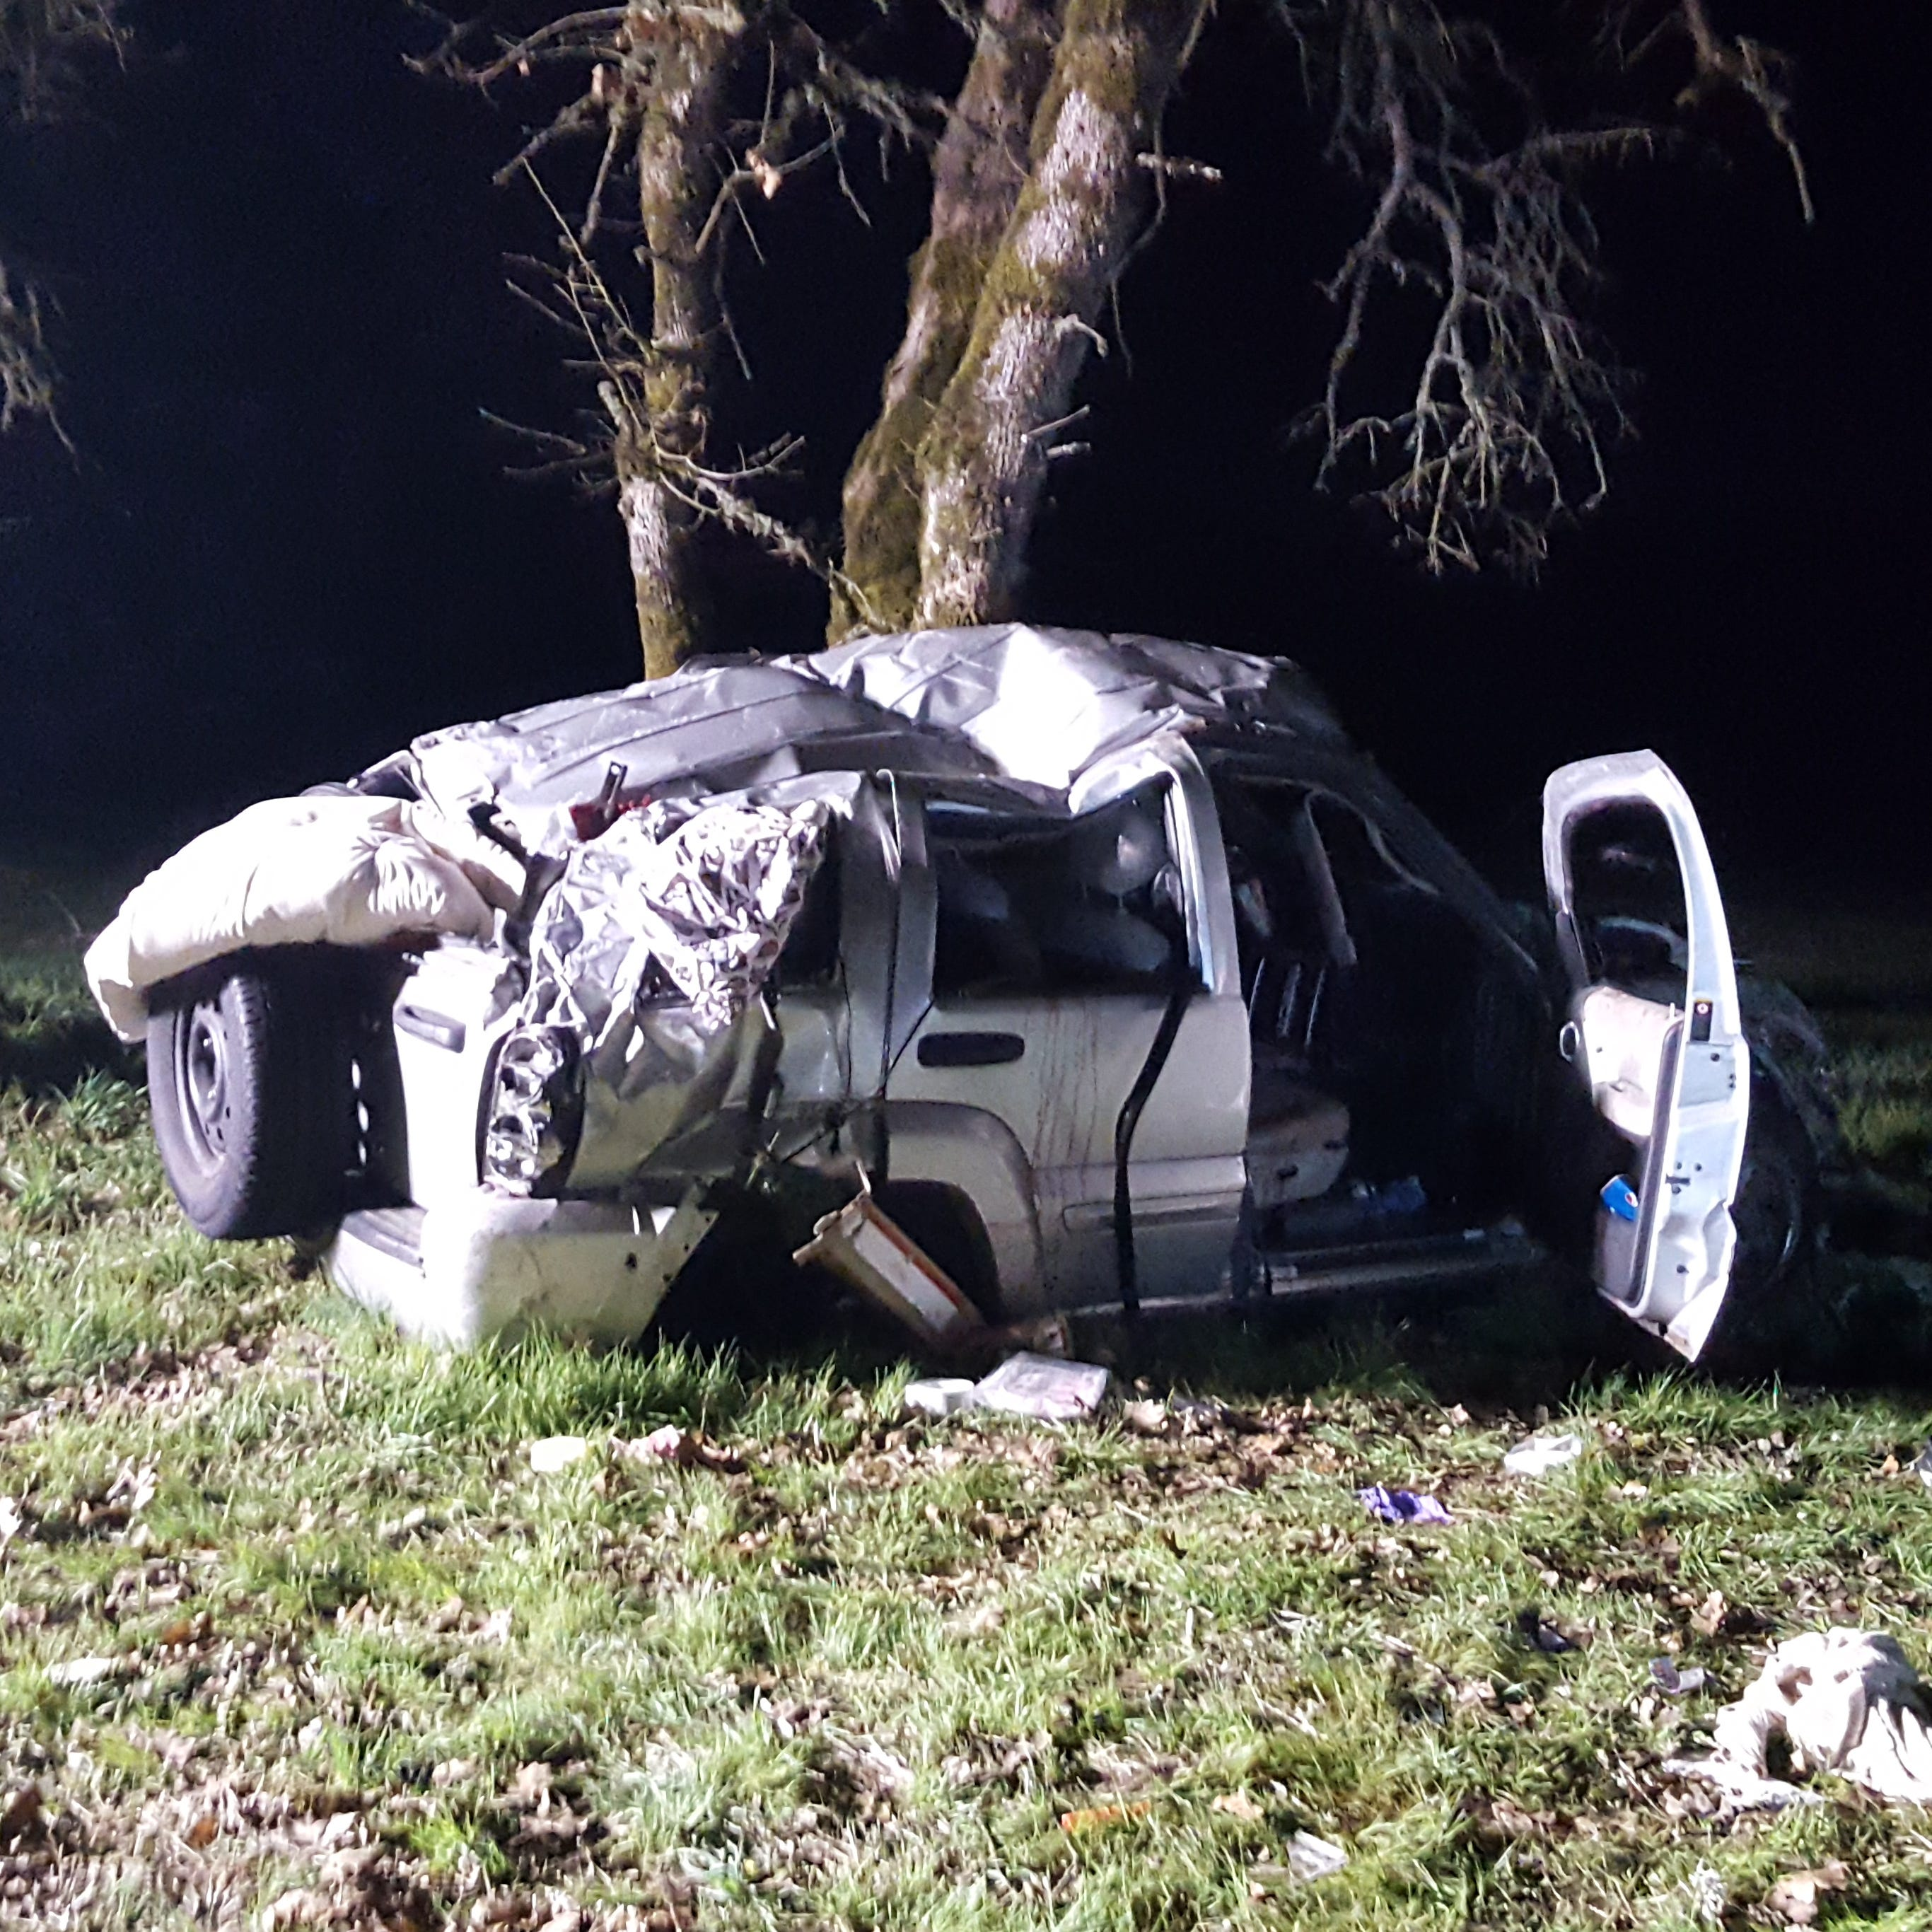 One dies after robbery suspects flee from police near I-5 south of Salem